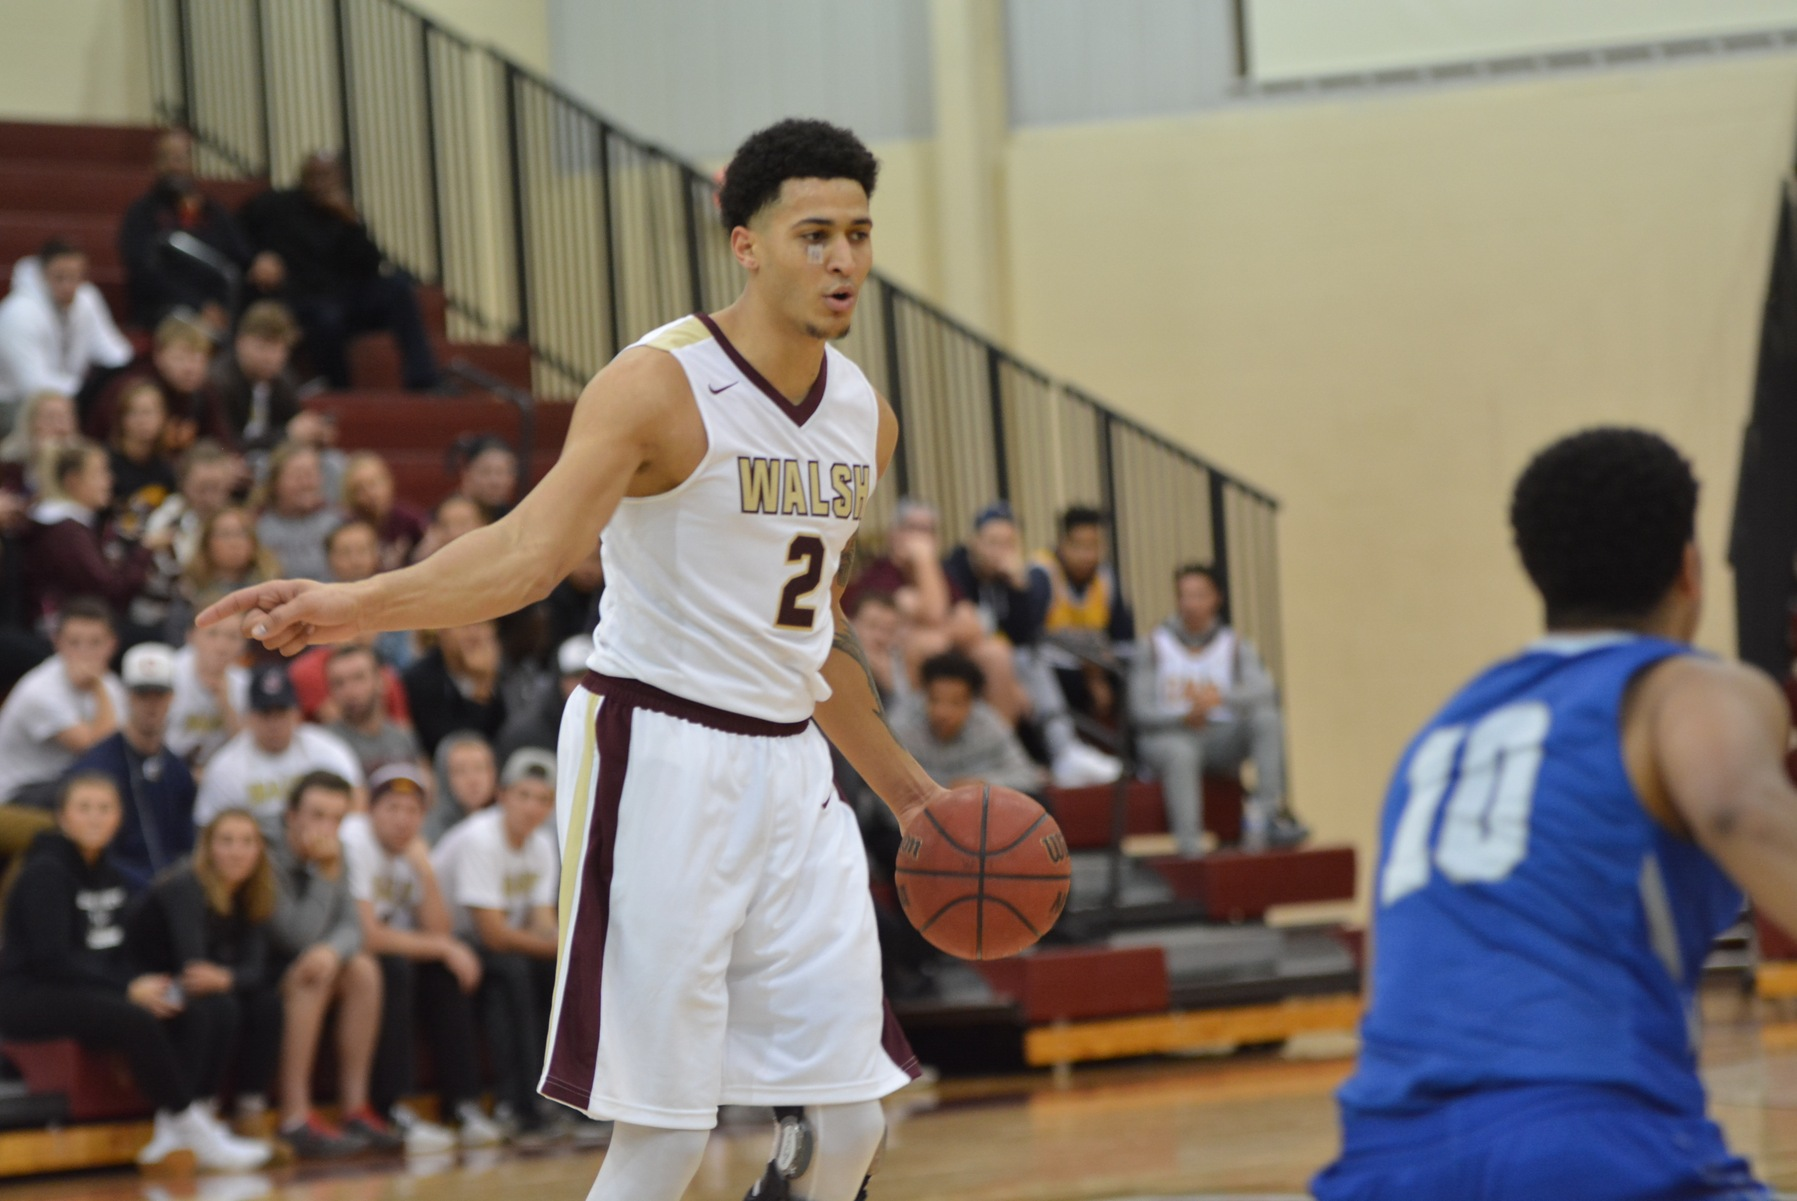 Cavs Crush Carlow 114-61